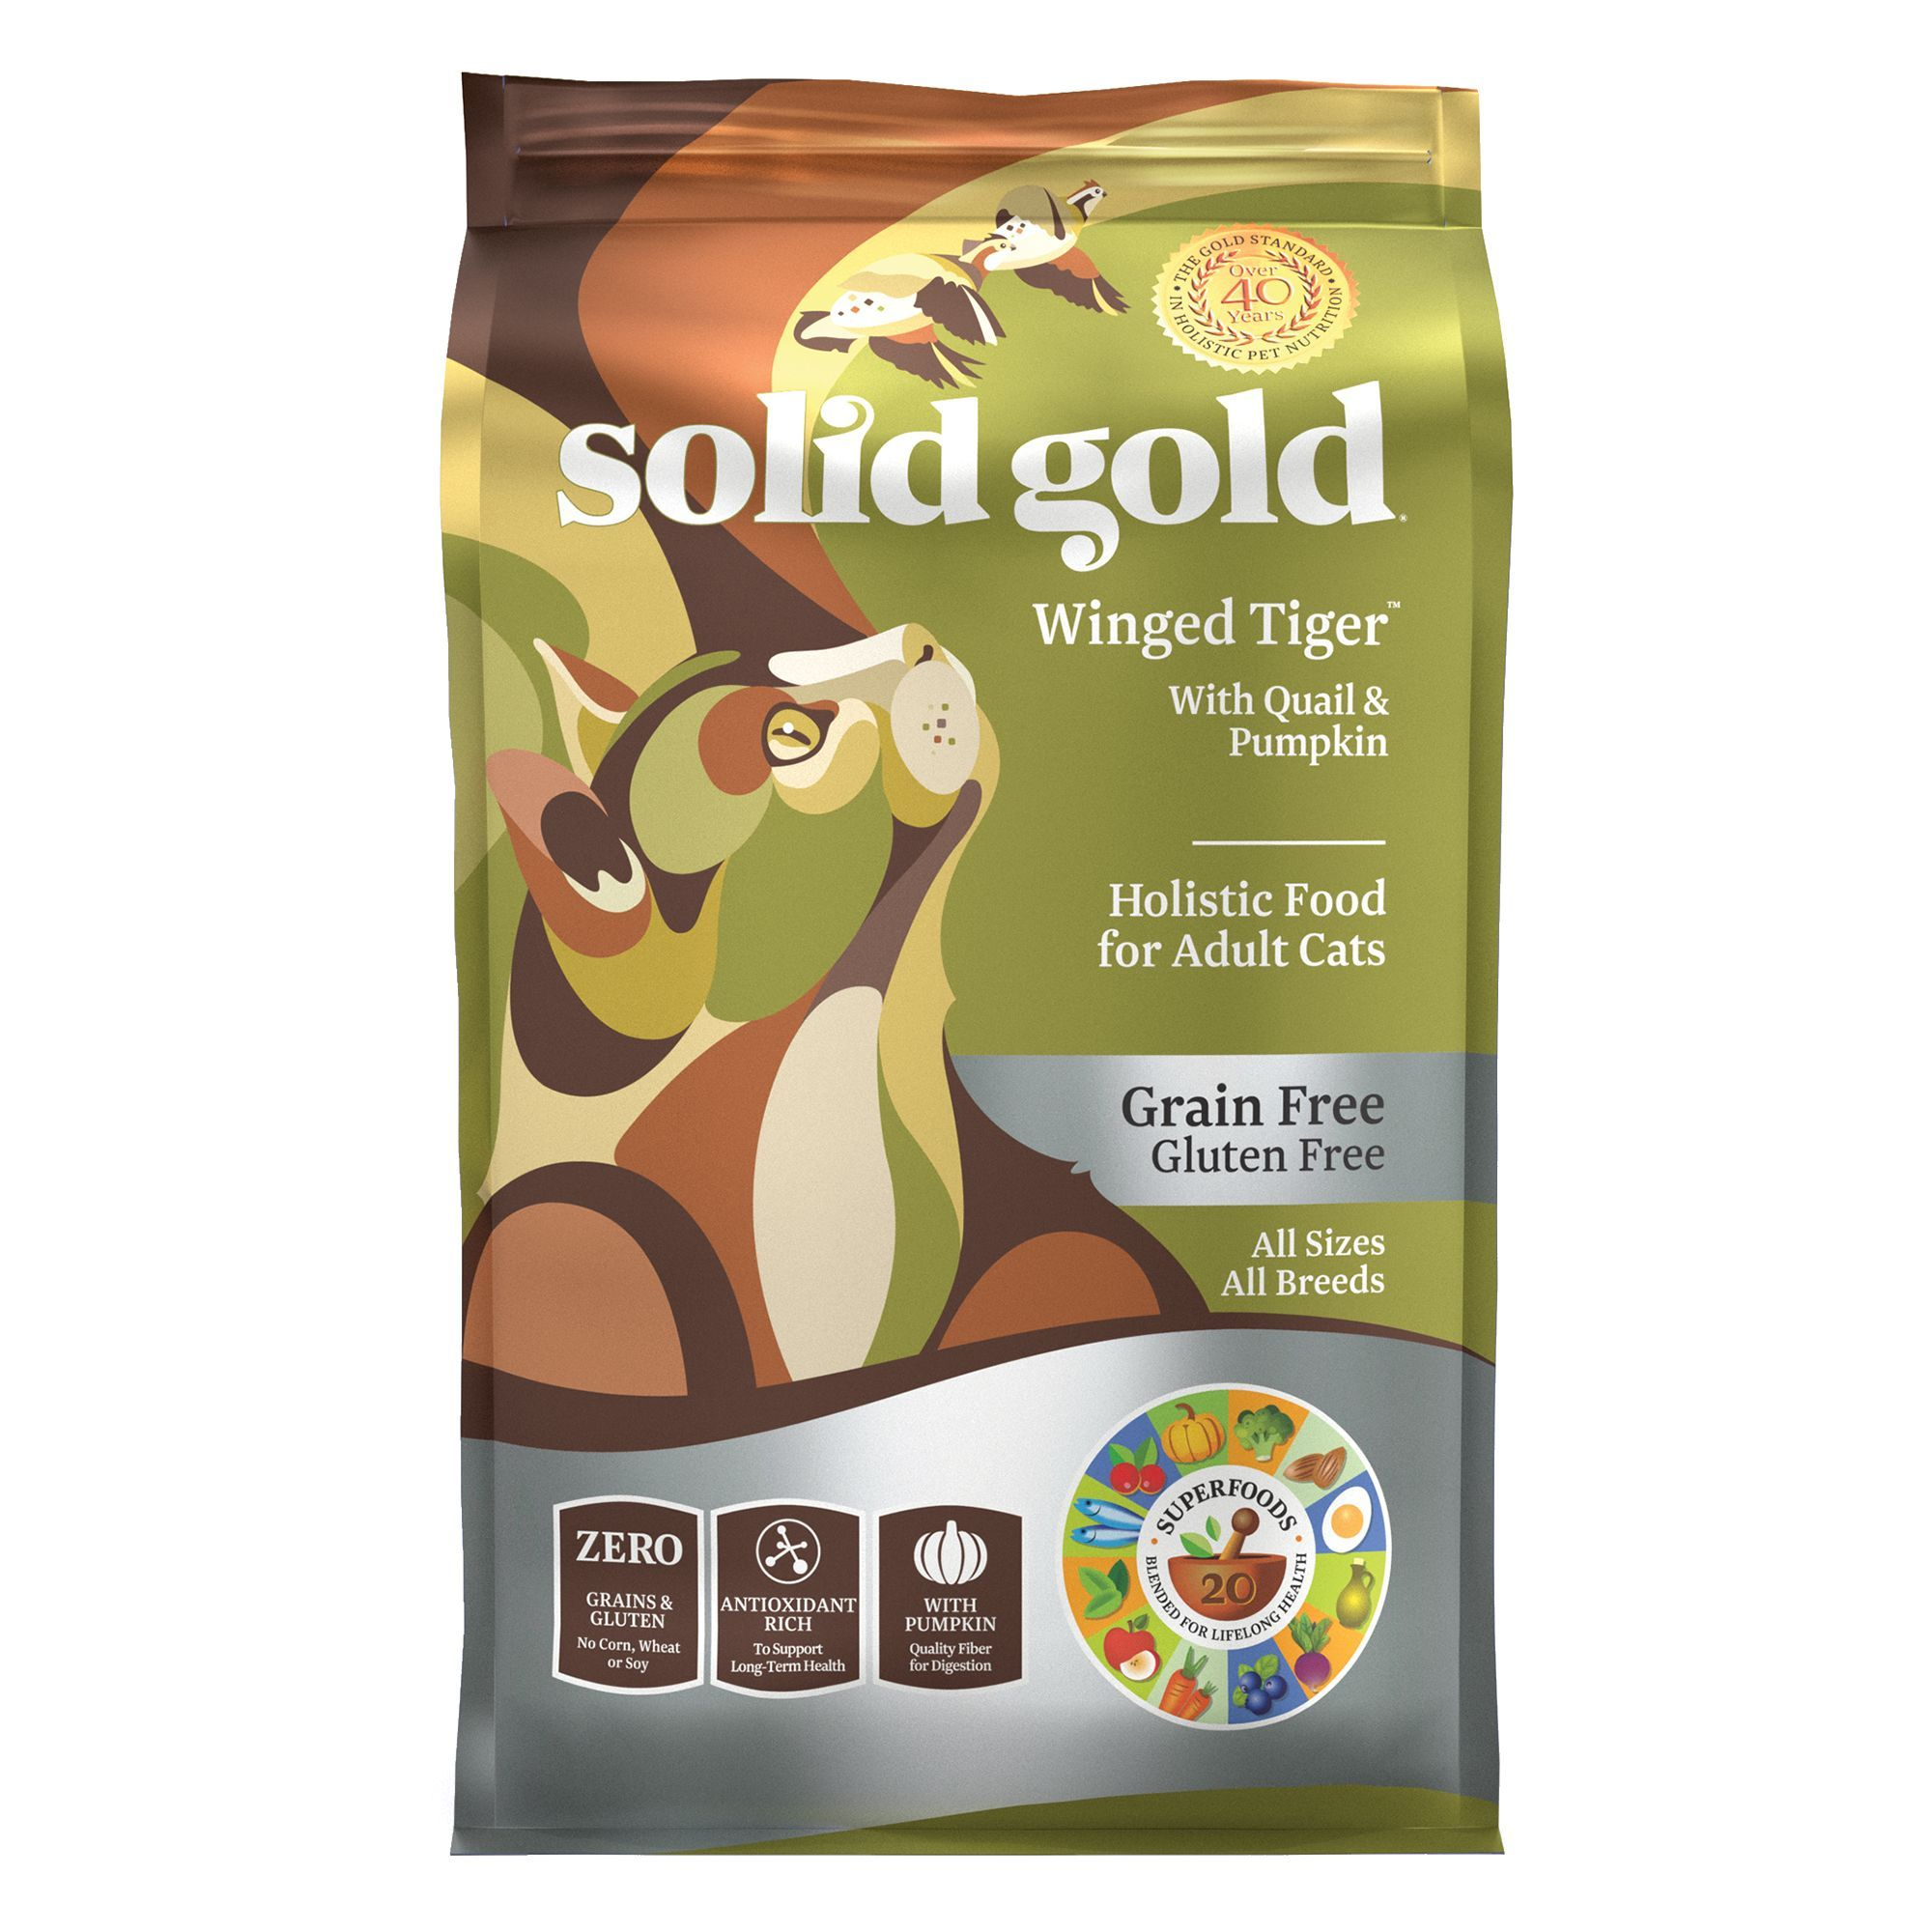 Solid Gold Winged Tiger Adult Cat Food Grain Free Gluten Free